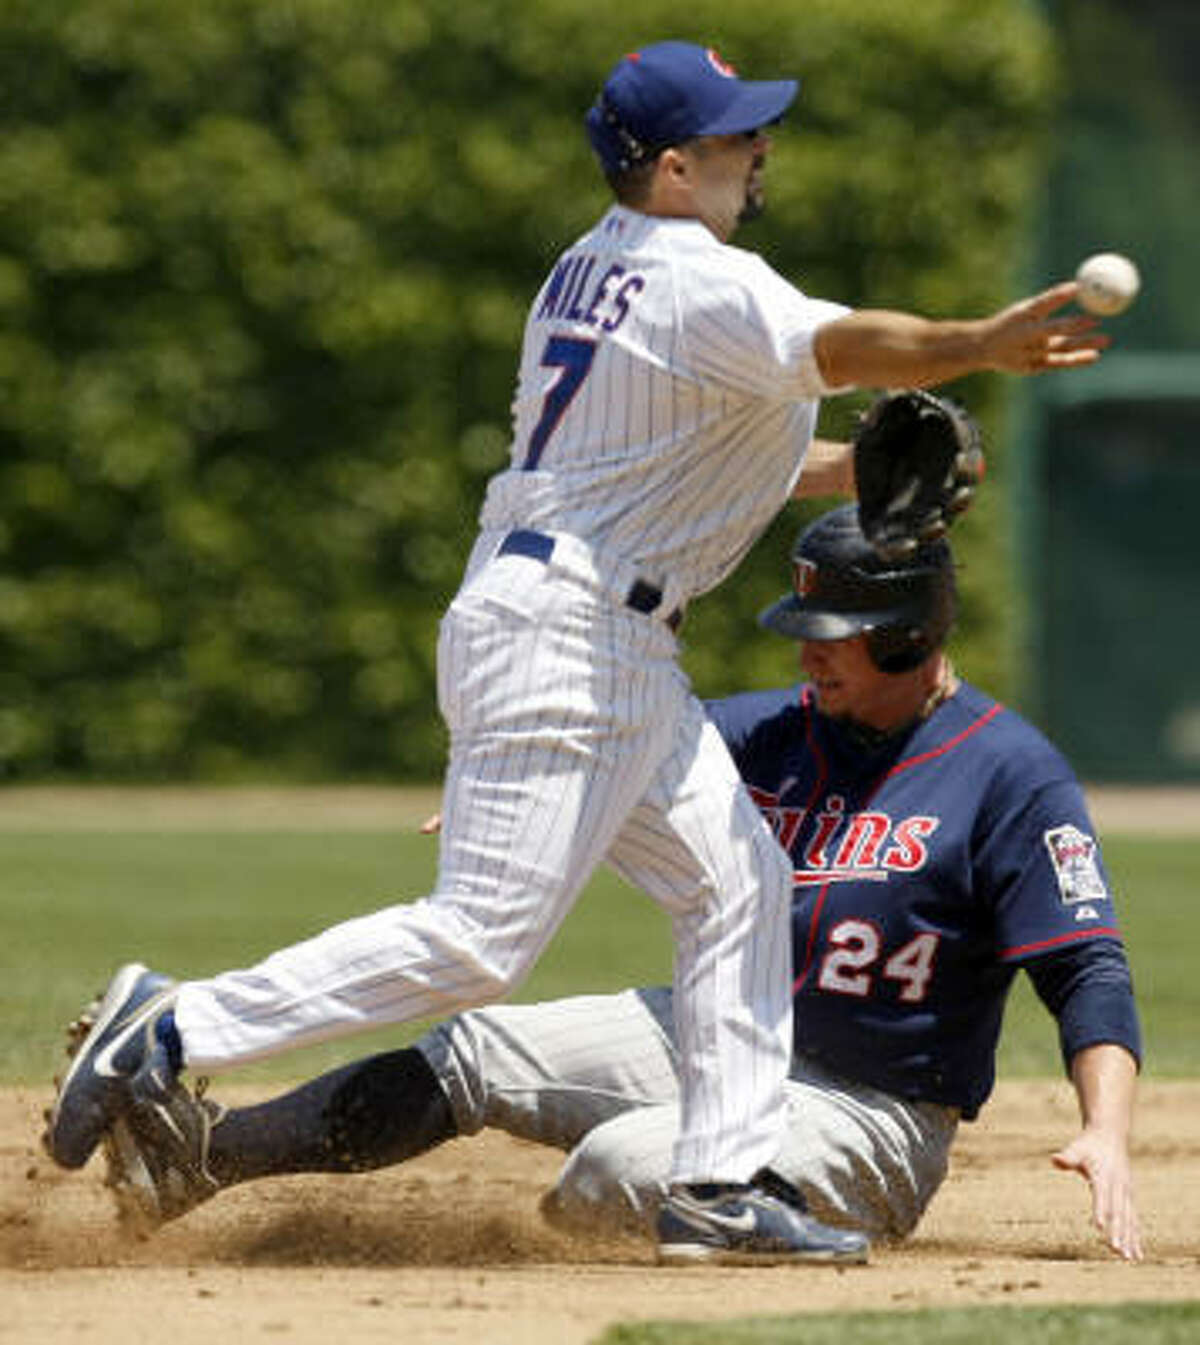 The Cubs' Aaron Miles forces out Minnesota's Joe Crede at second base in the second inning June 12, at Wrigley Field.